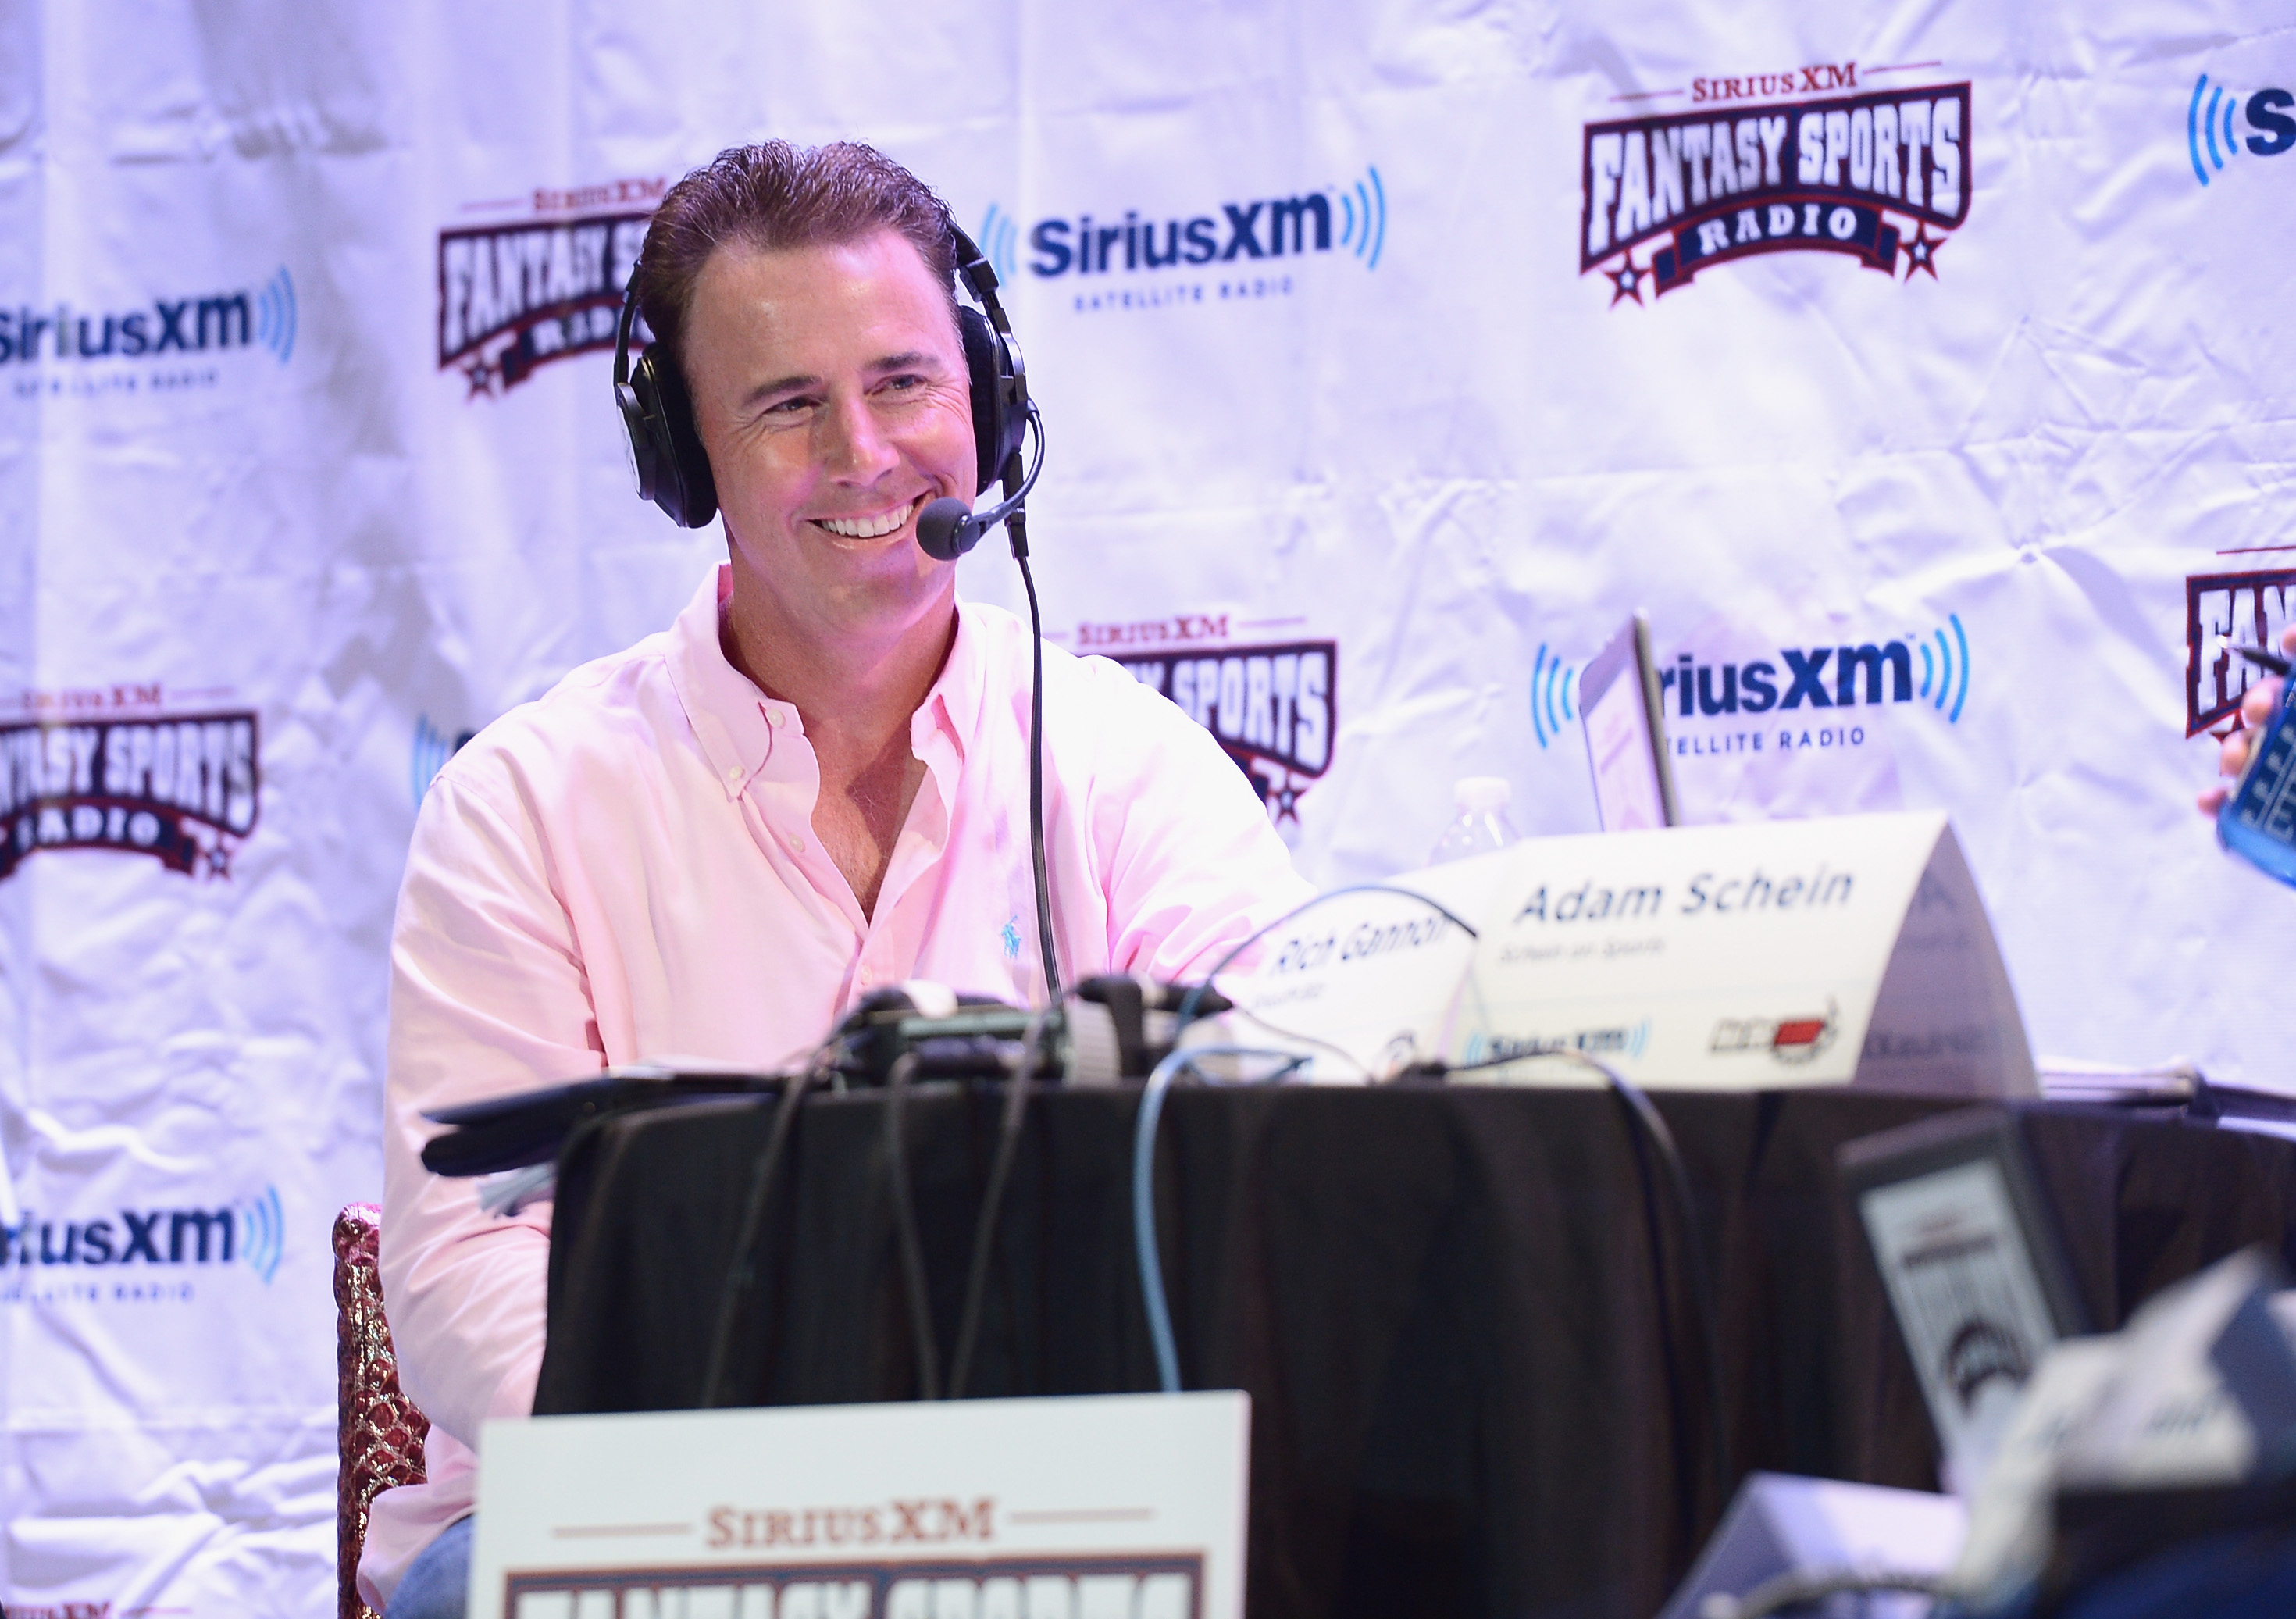 Former Professional Football player Rich Gannon attends the SiriusXM Celebrity Fantasy Football Draft at Hard Rock Cafe - Times Square on July 17, 2013 in New York City. (Photo by Michael Loccisano/Getty Imagesfor SiriusXM)